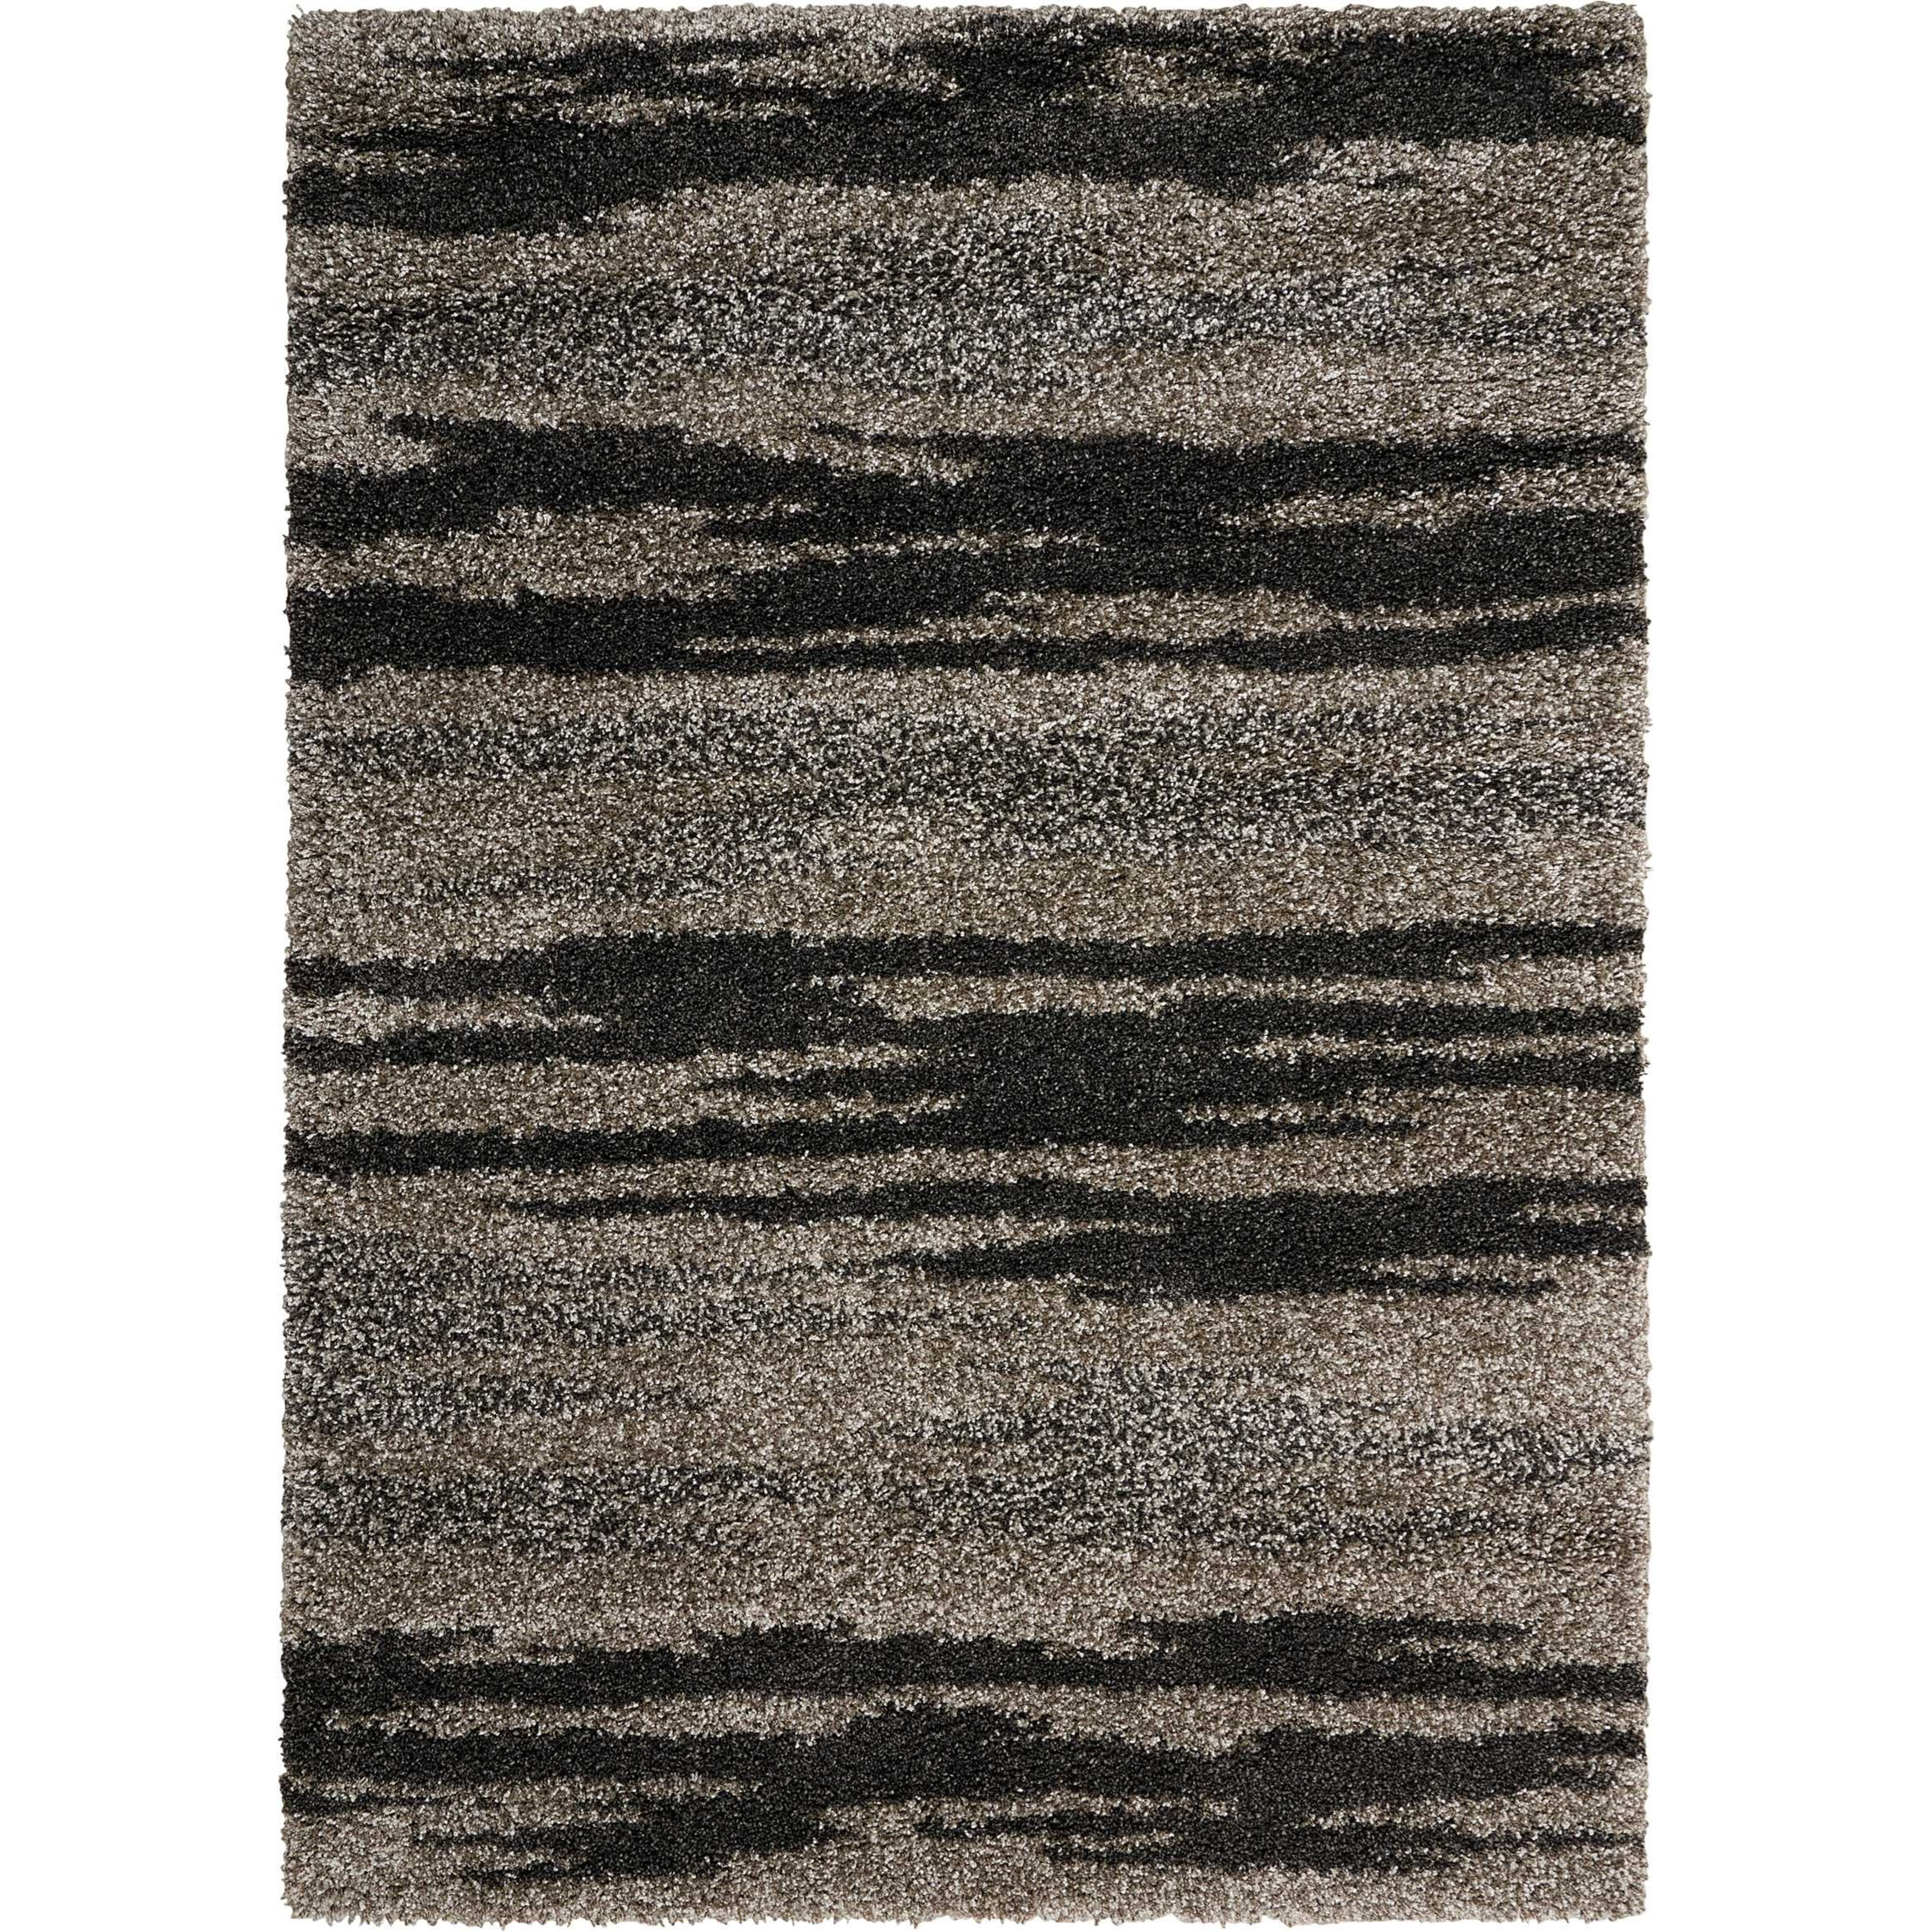 Amore Amore AMOR3 Grey 8'x11'   Rug by Nourison at Home Collections Furniture